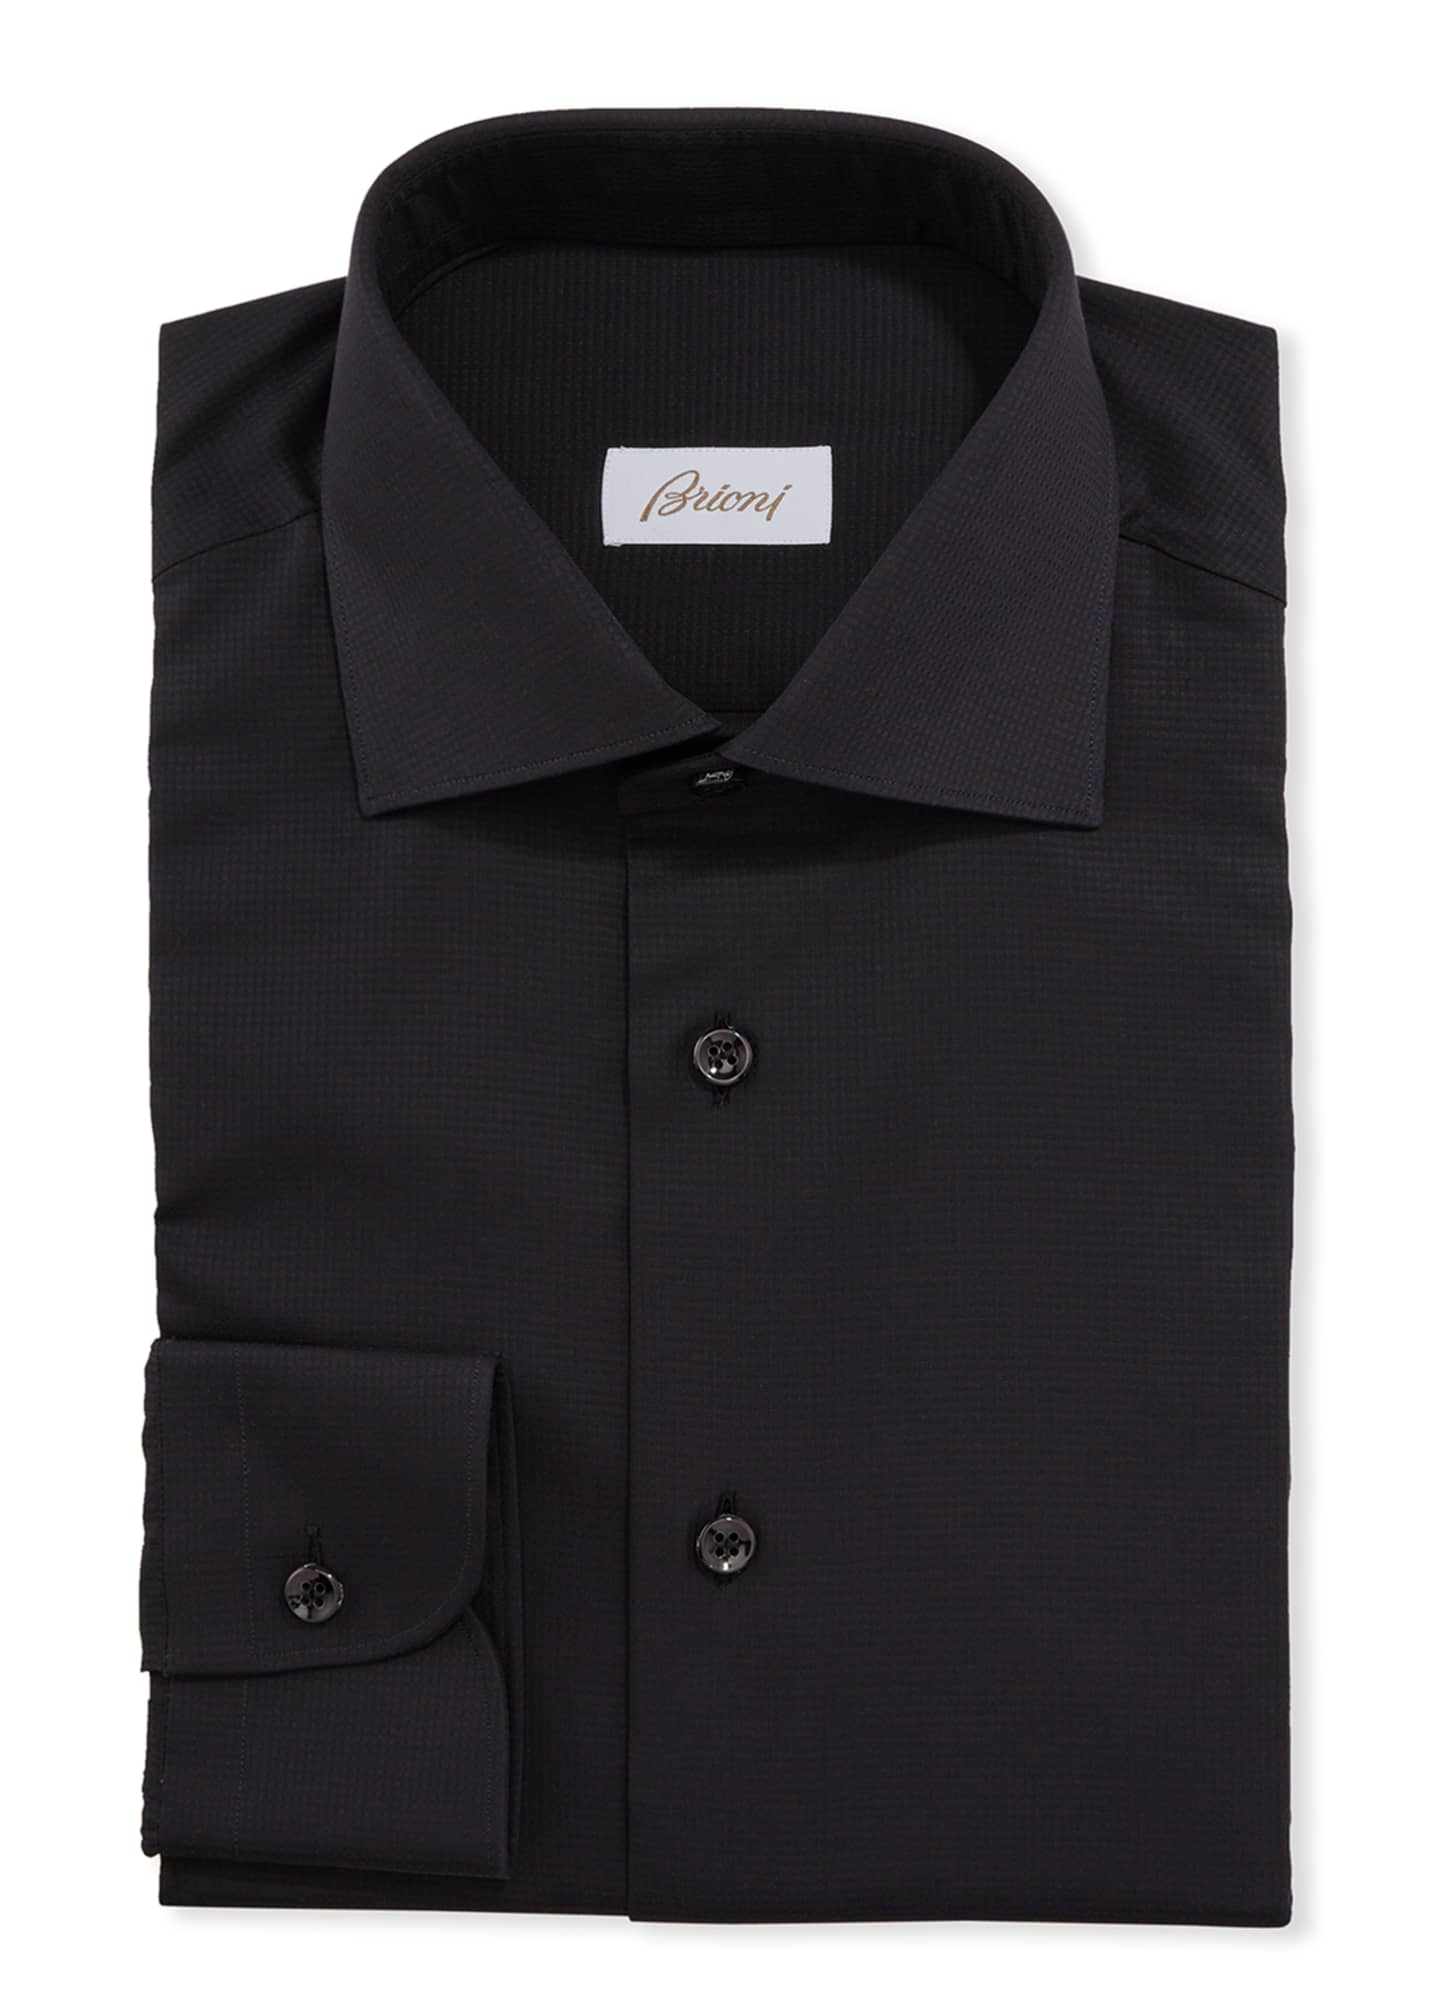 Image 1 of 2: Men's Textured Solid Dress Shirt